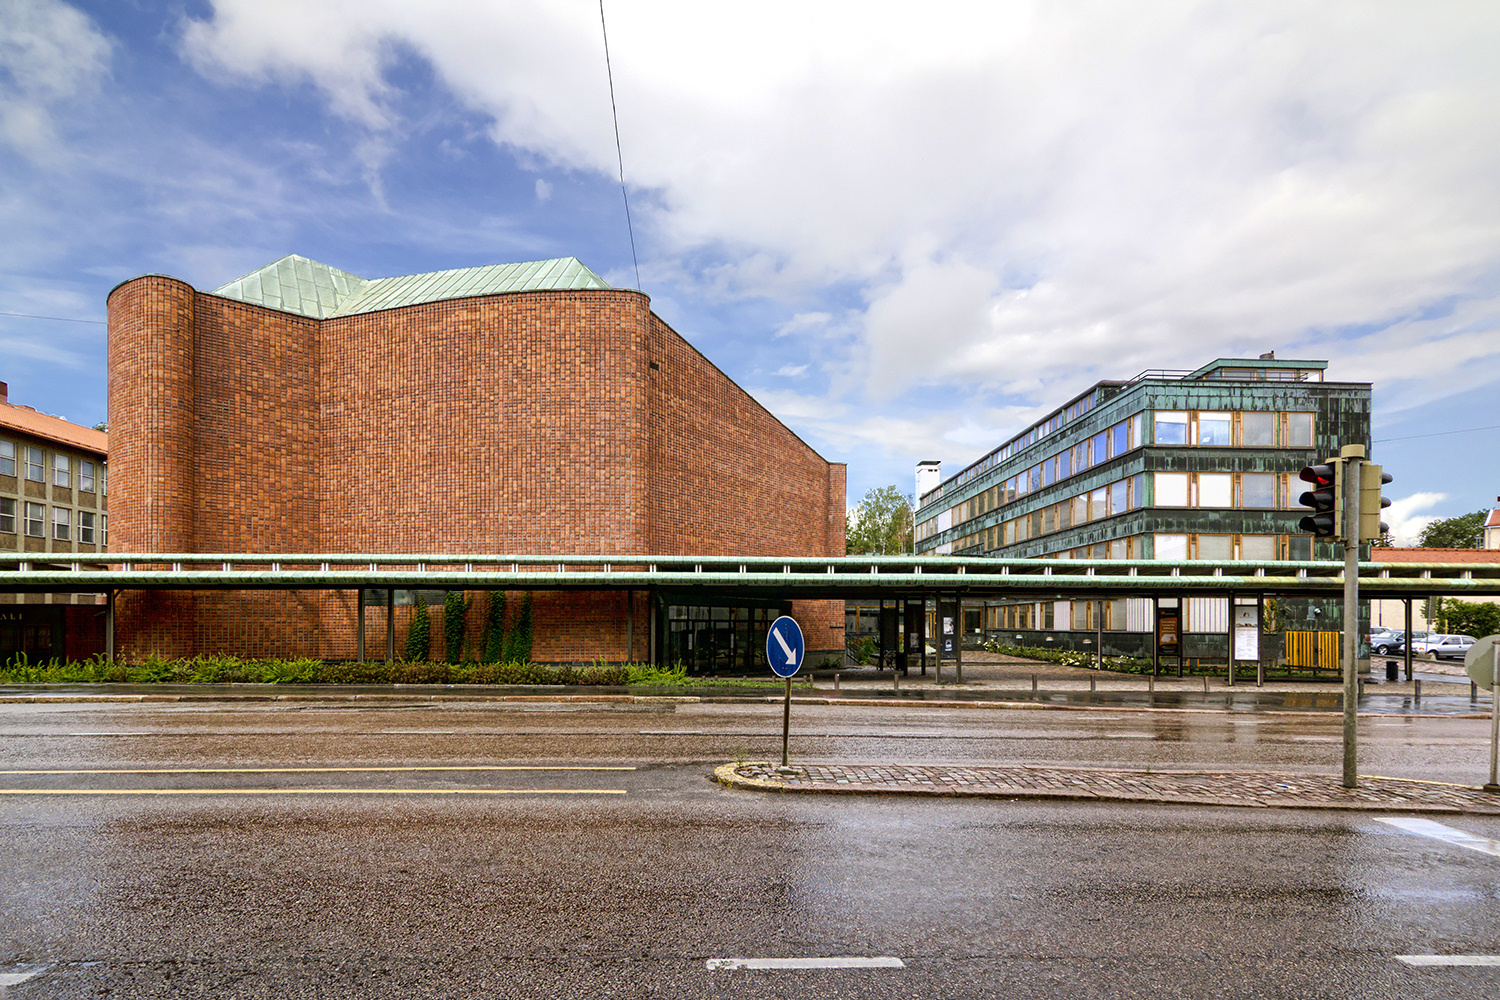 Ad classics house of culture alvar aalto archdaily for Old school house music classics